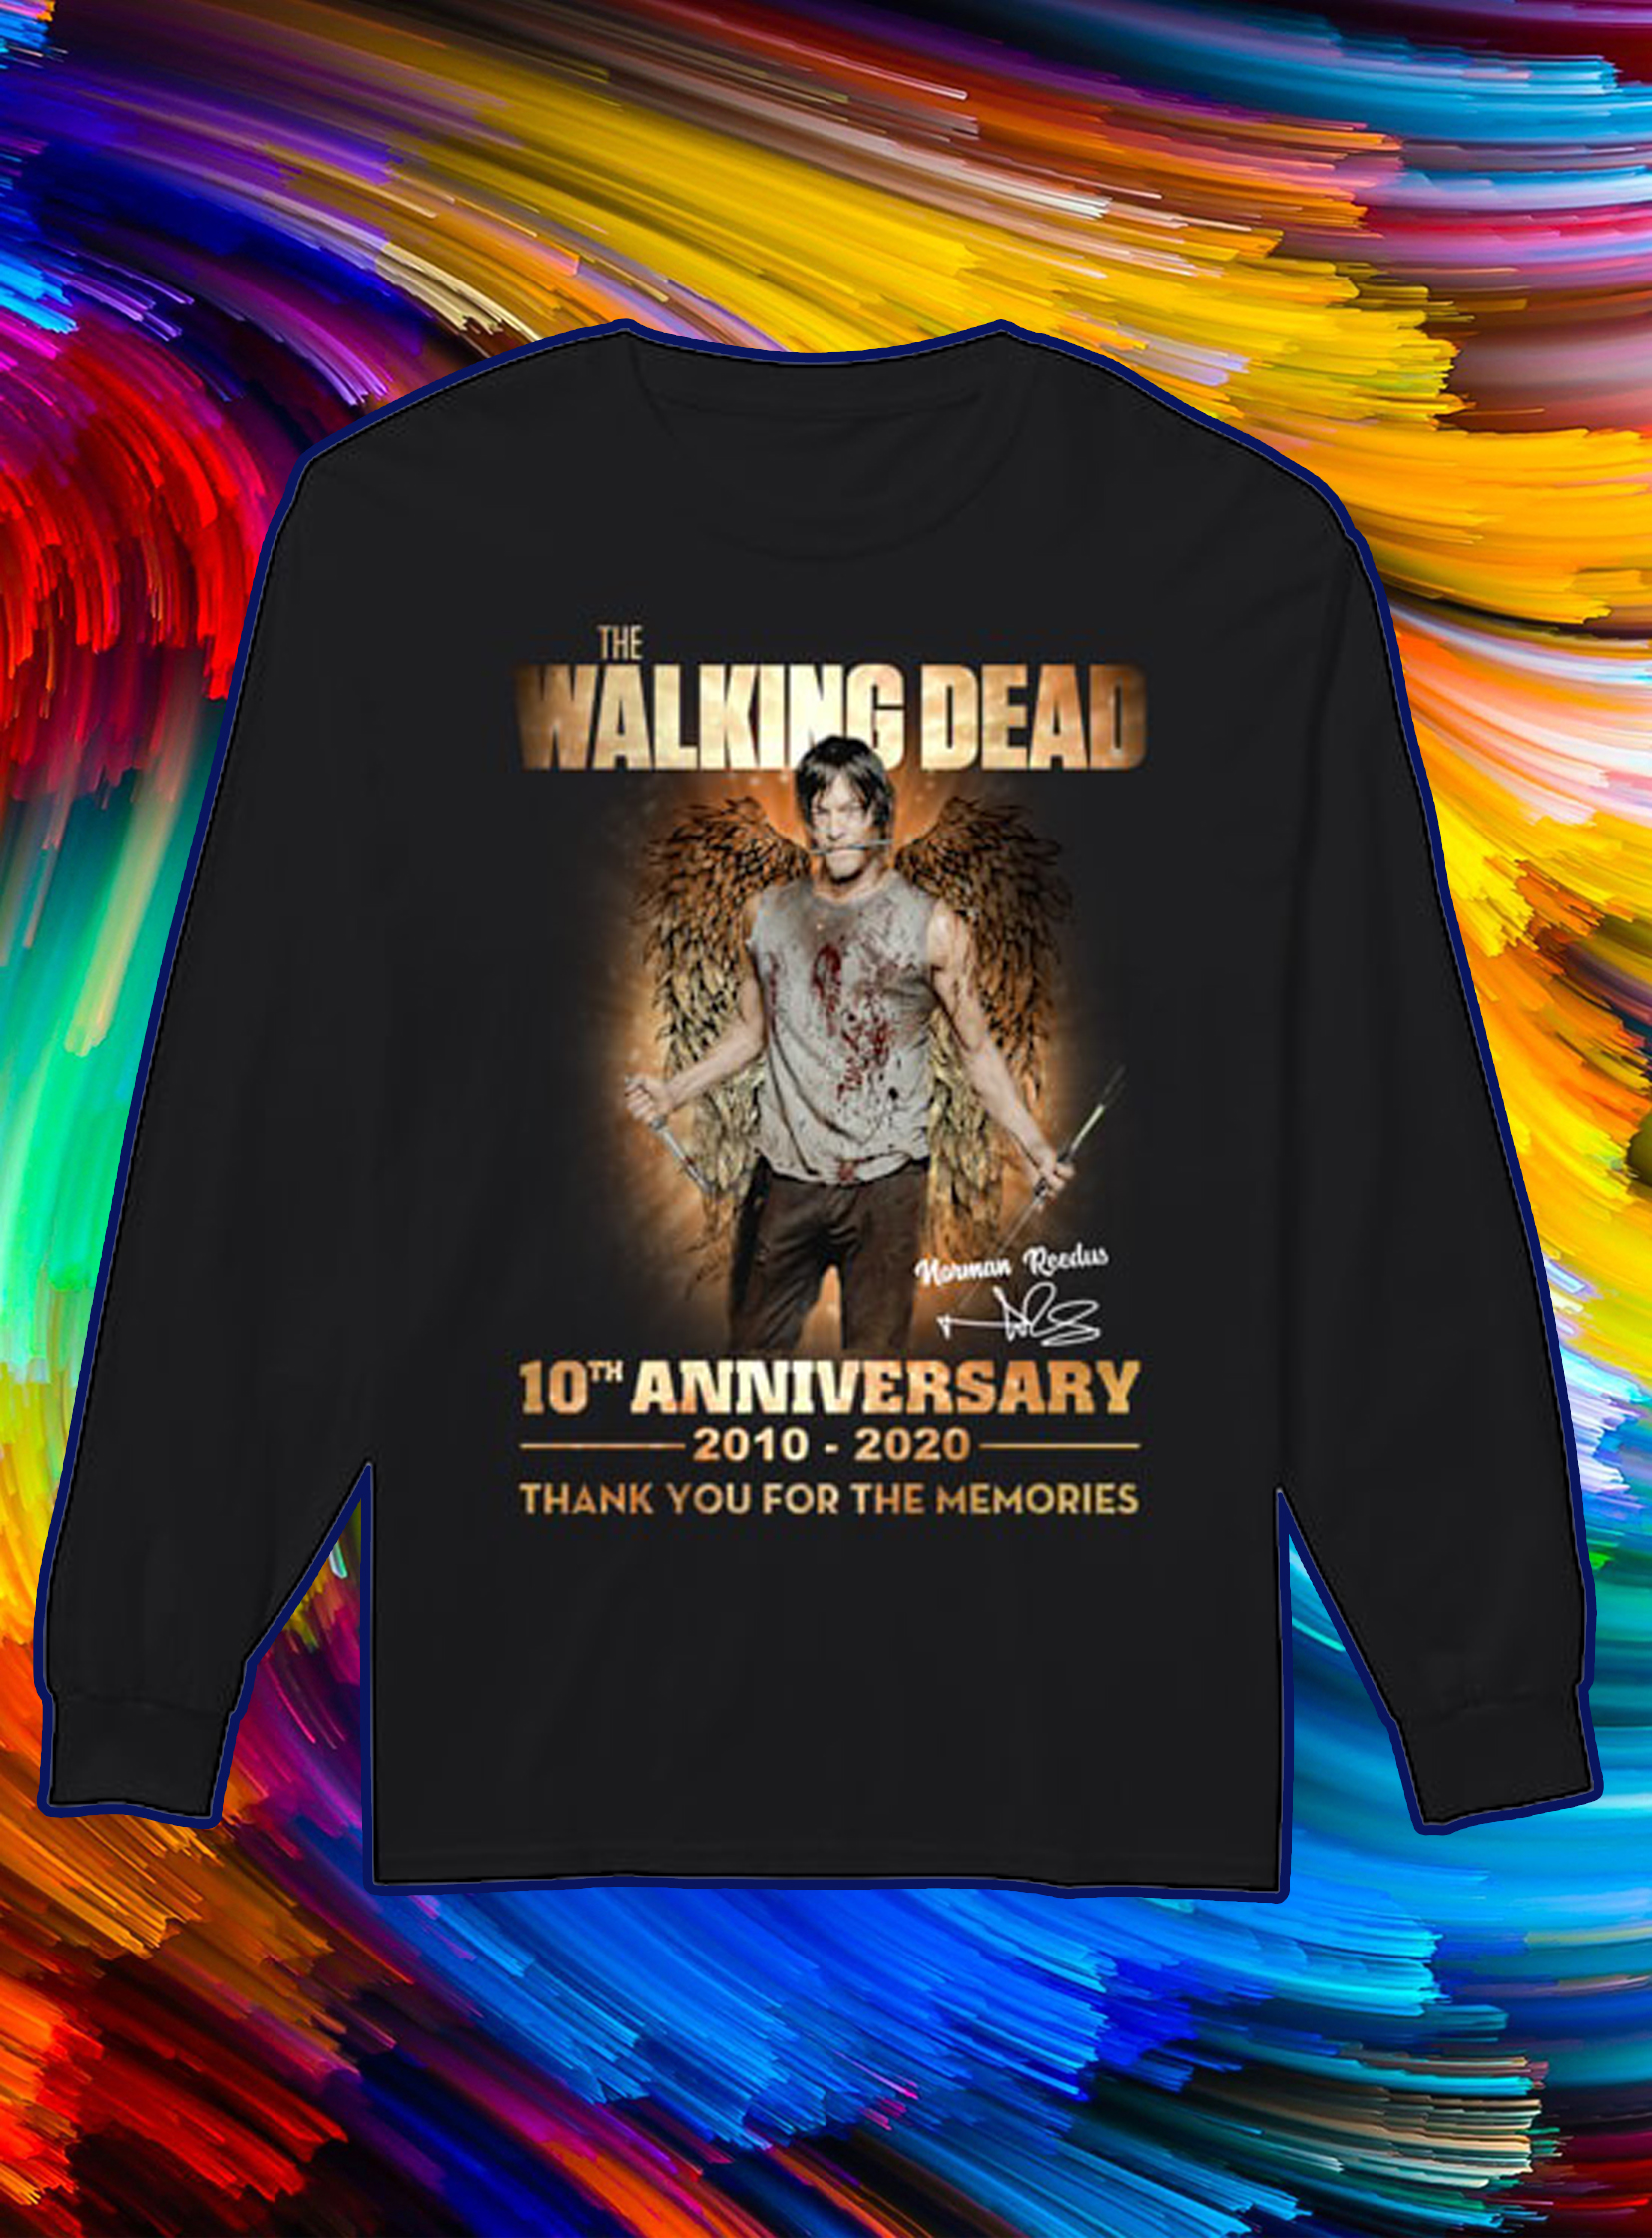 The walking dead 10th anniversary 2010 2020 thank you for the memories longsleeve tee